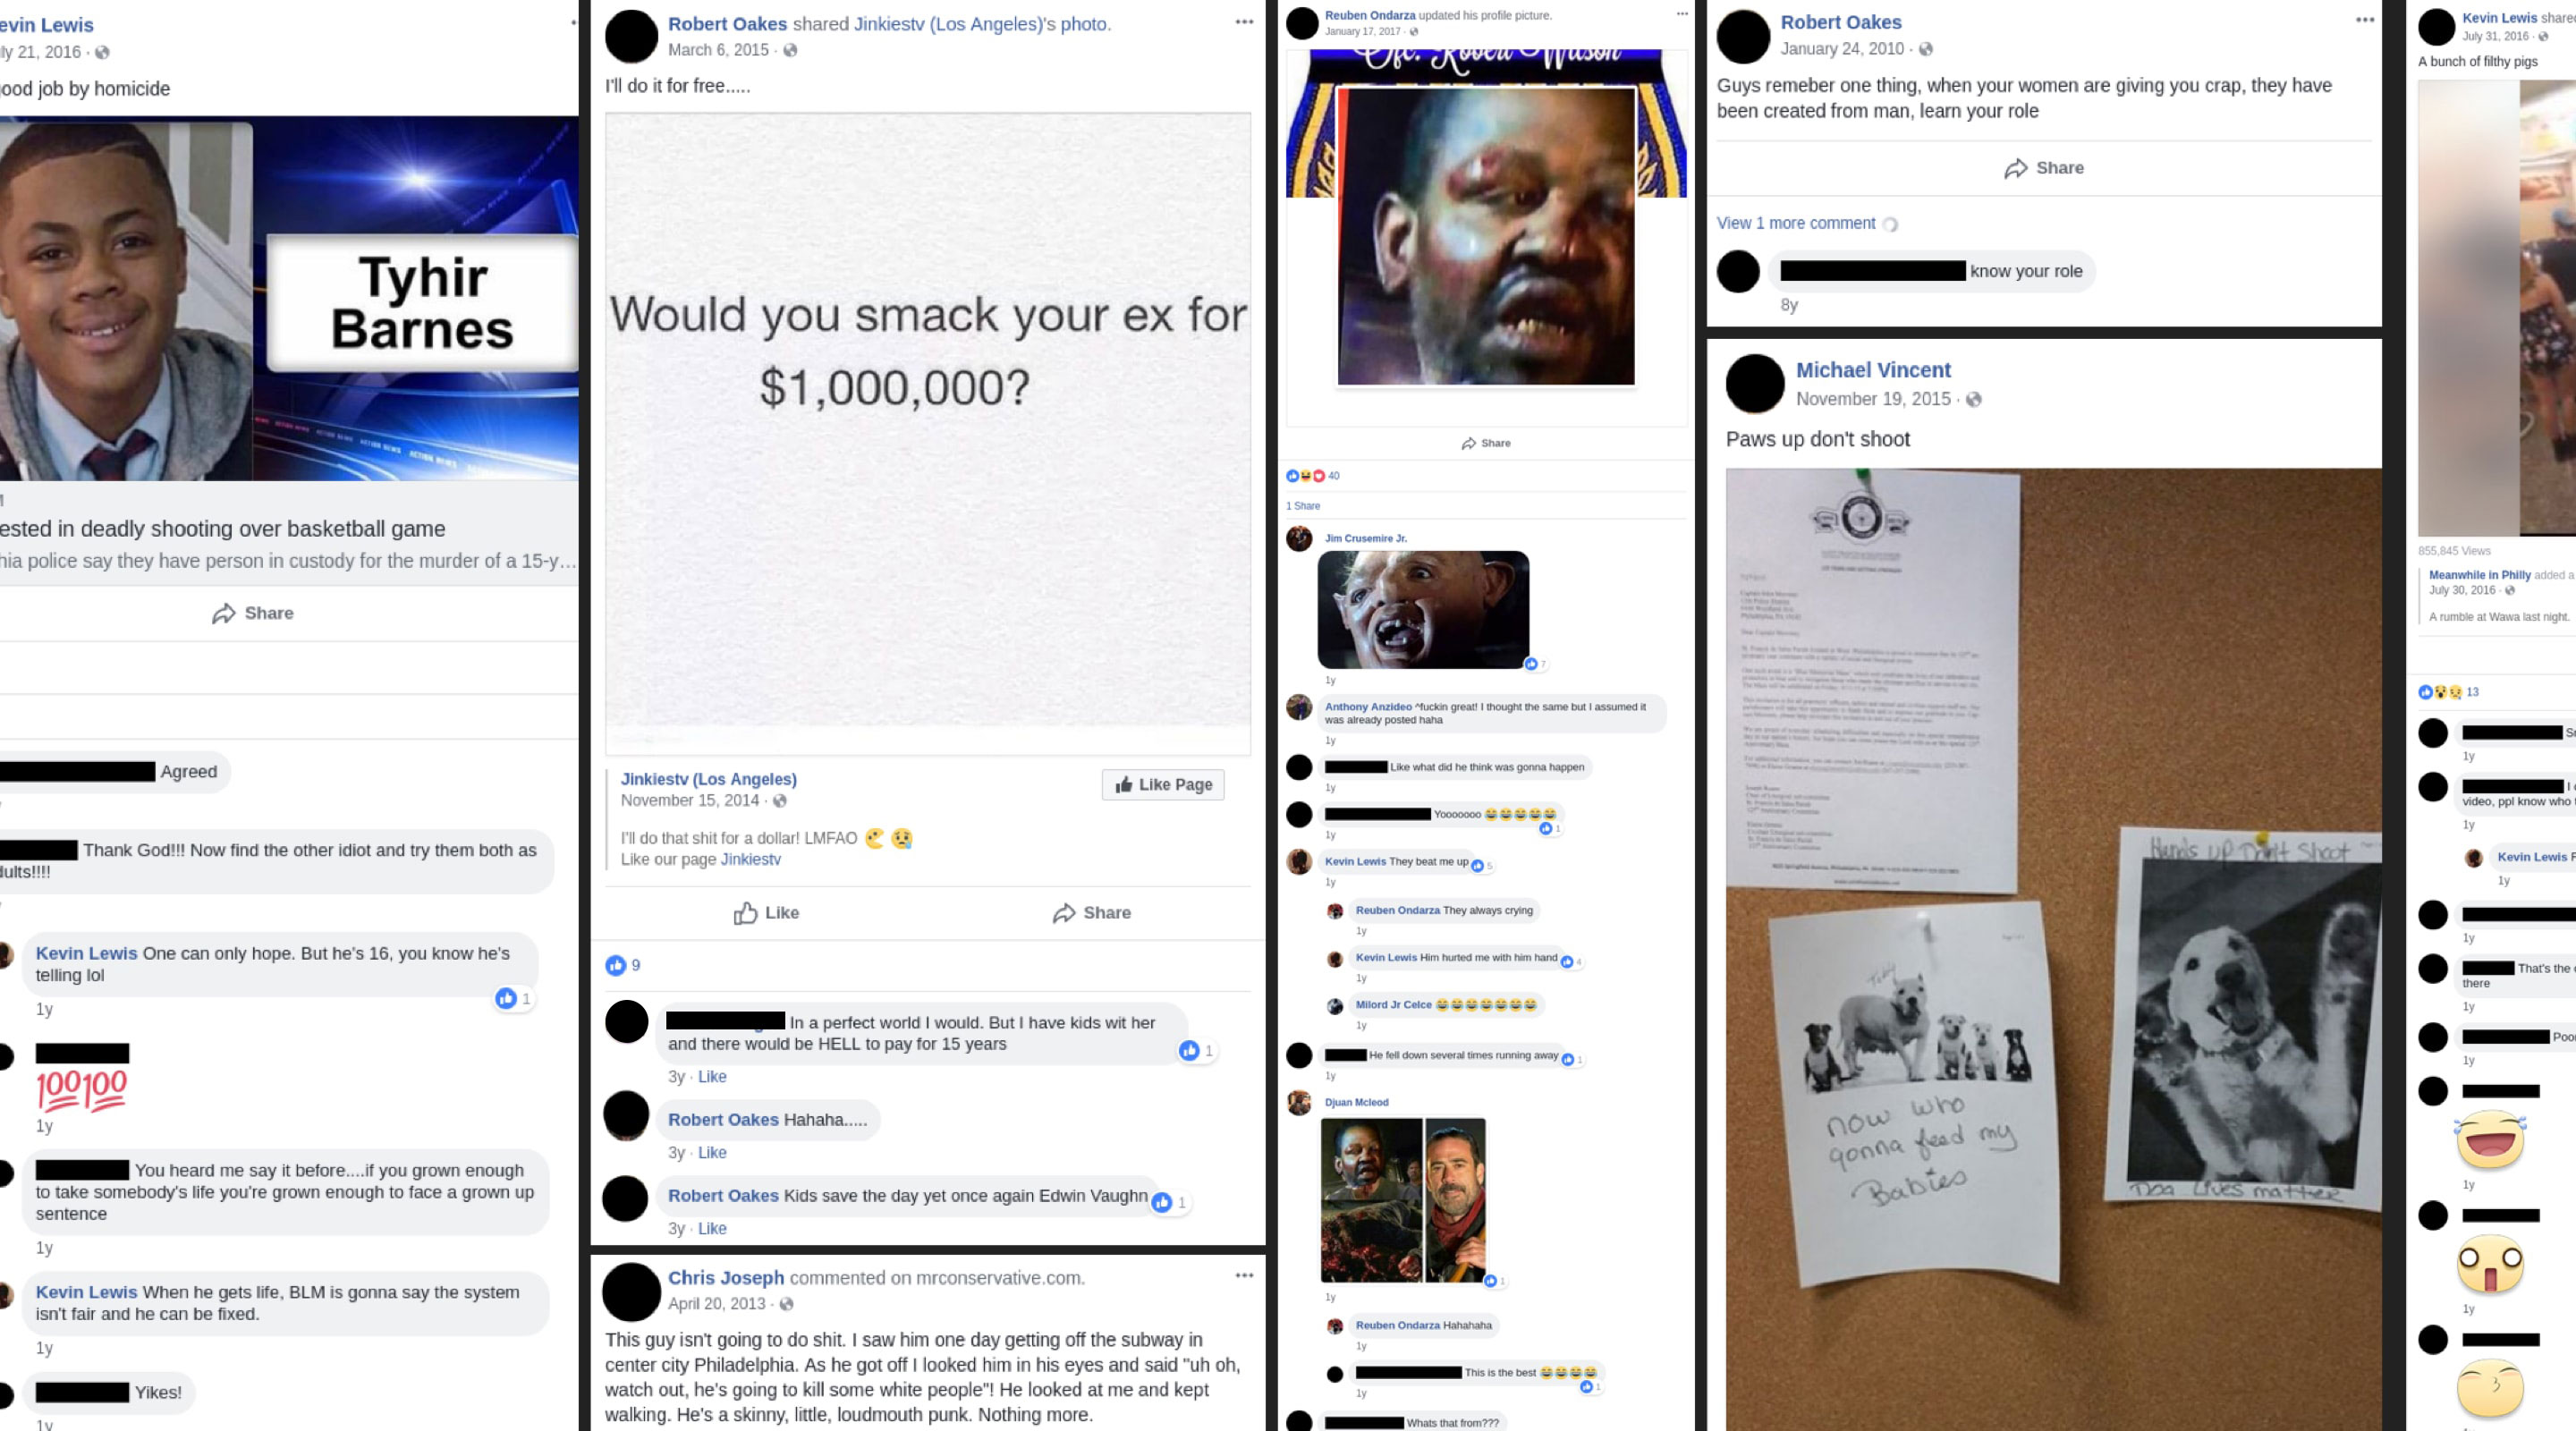 Cops' troubling Facebook posts revealed | In Plain View | Injustice